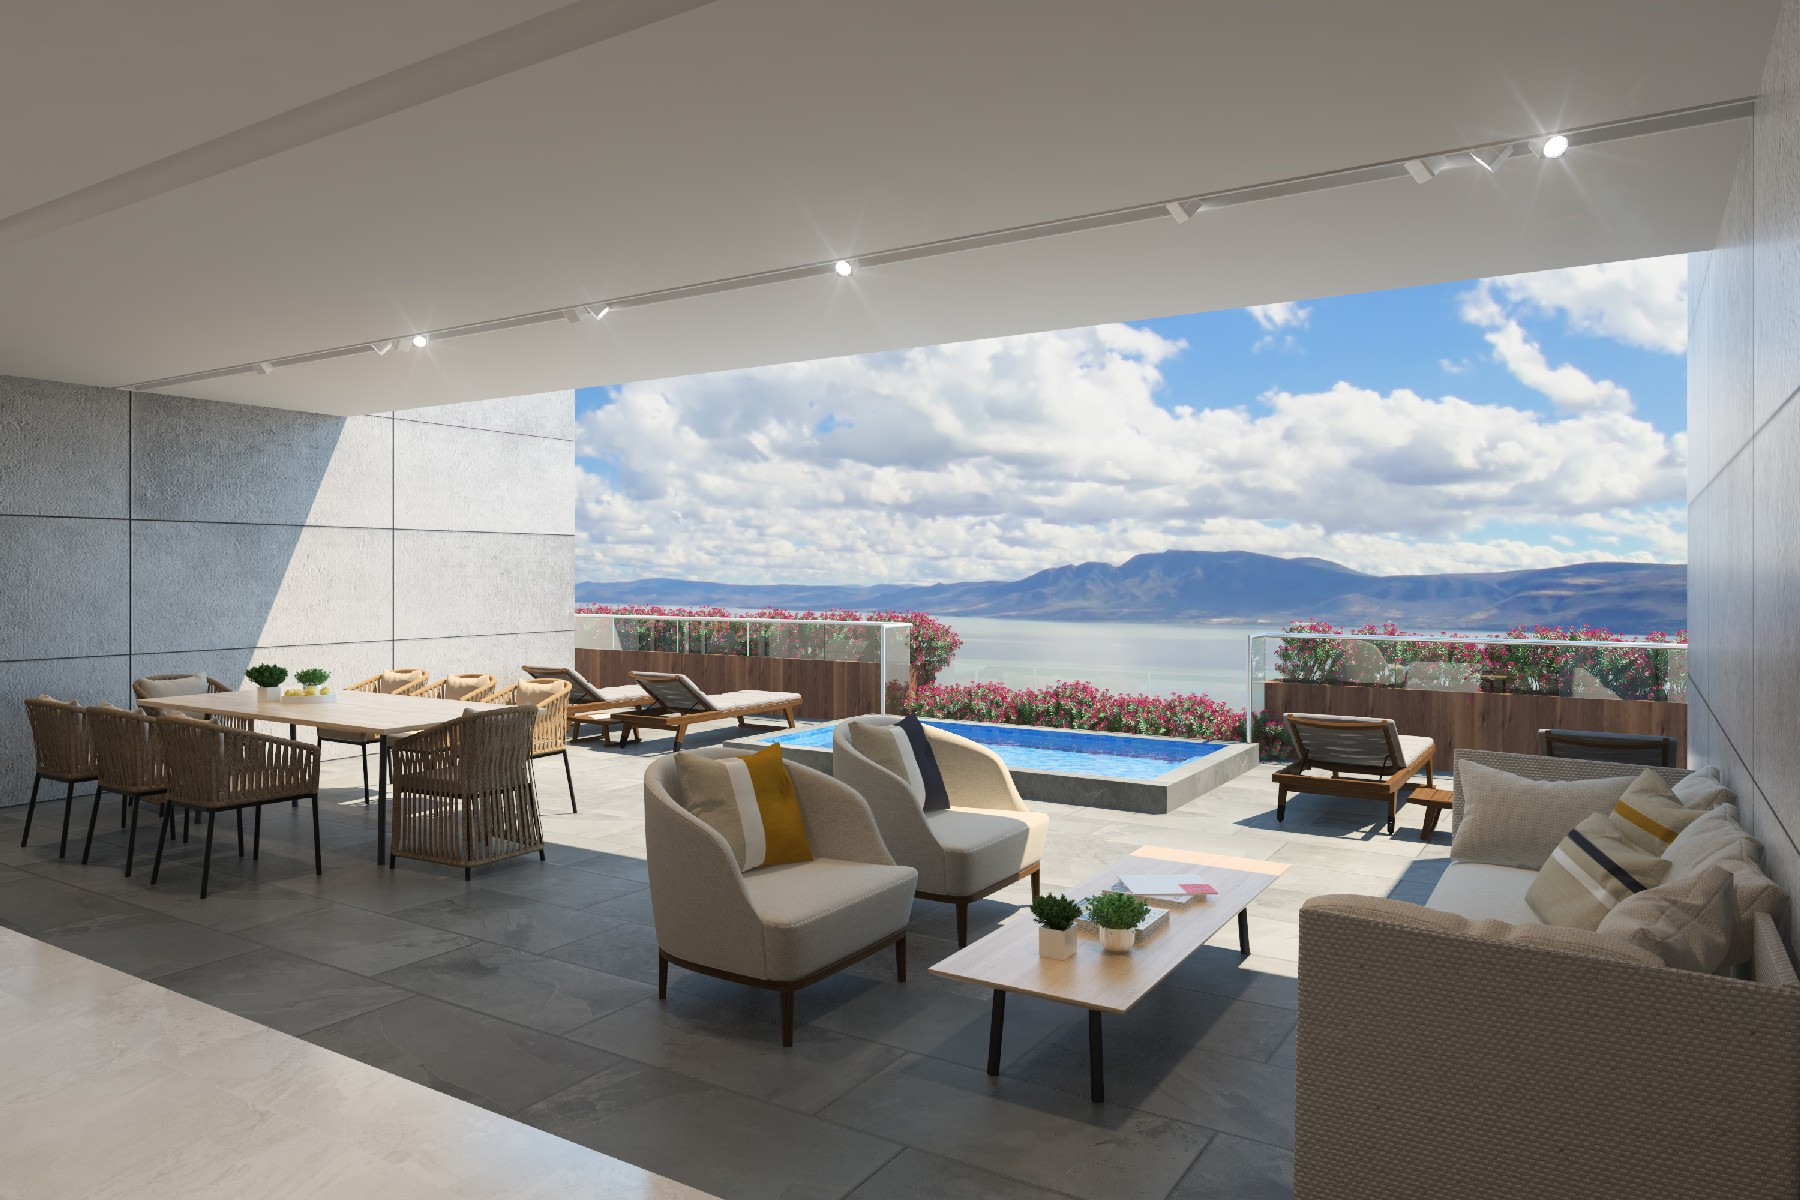 Luxury Apartment, 4R type Pent House, Floor 5, AltoLago, Chapala